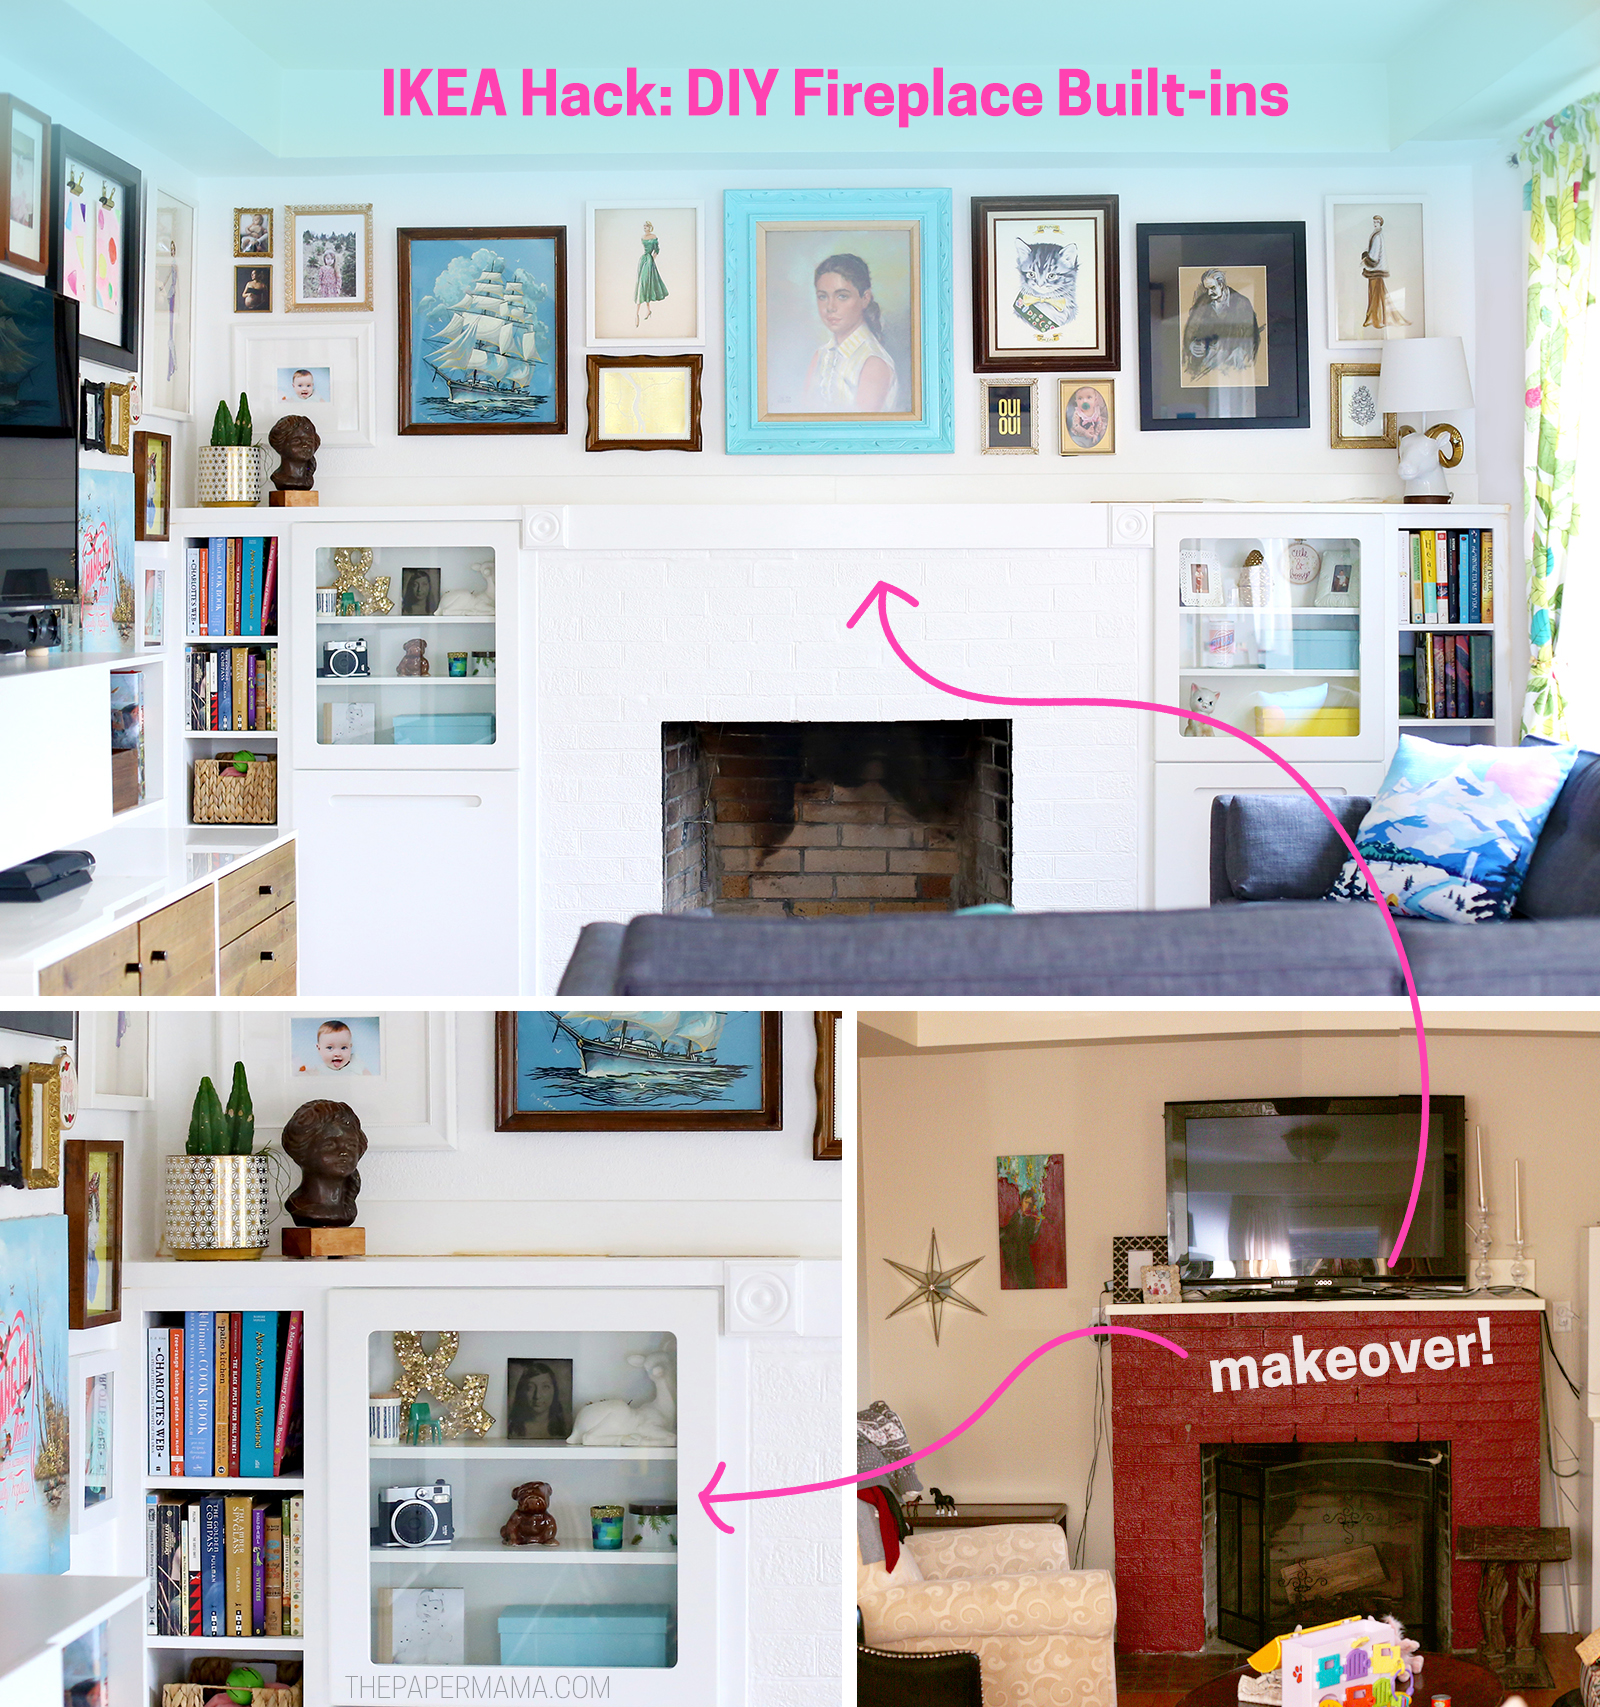 IKEA Hack: DIY Fireplace Built-ins